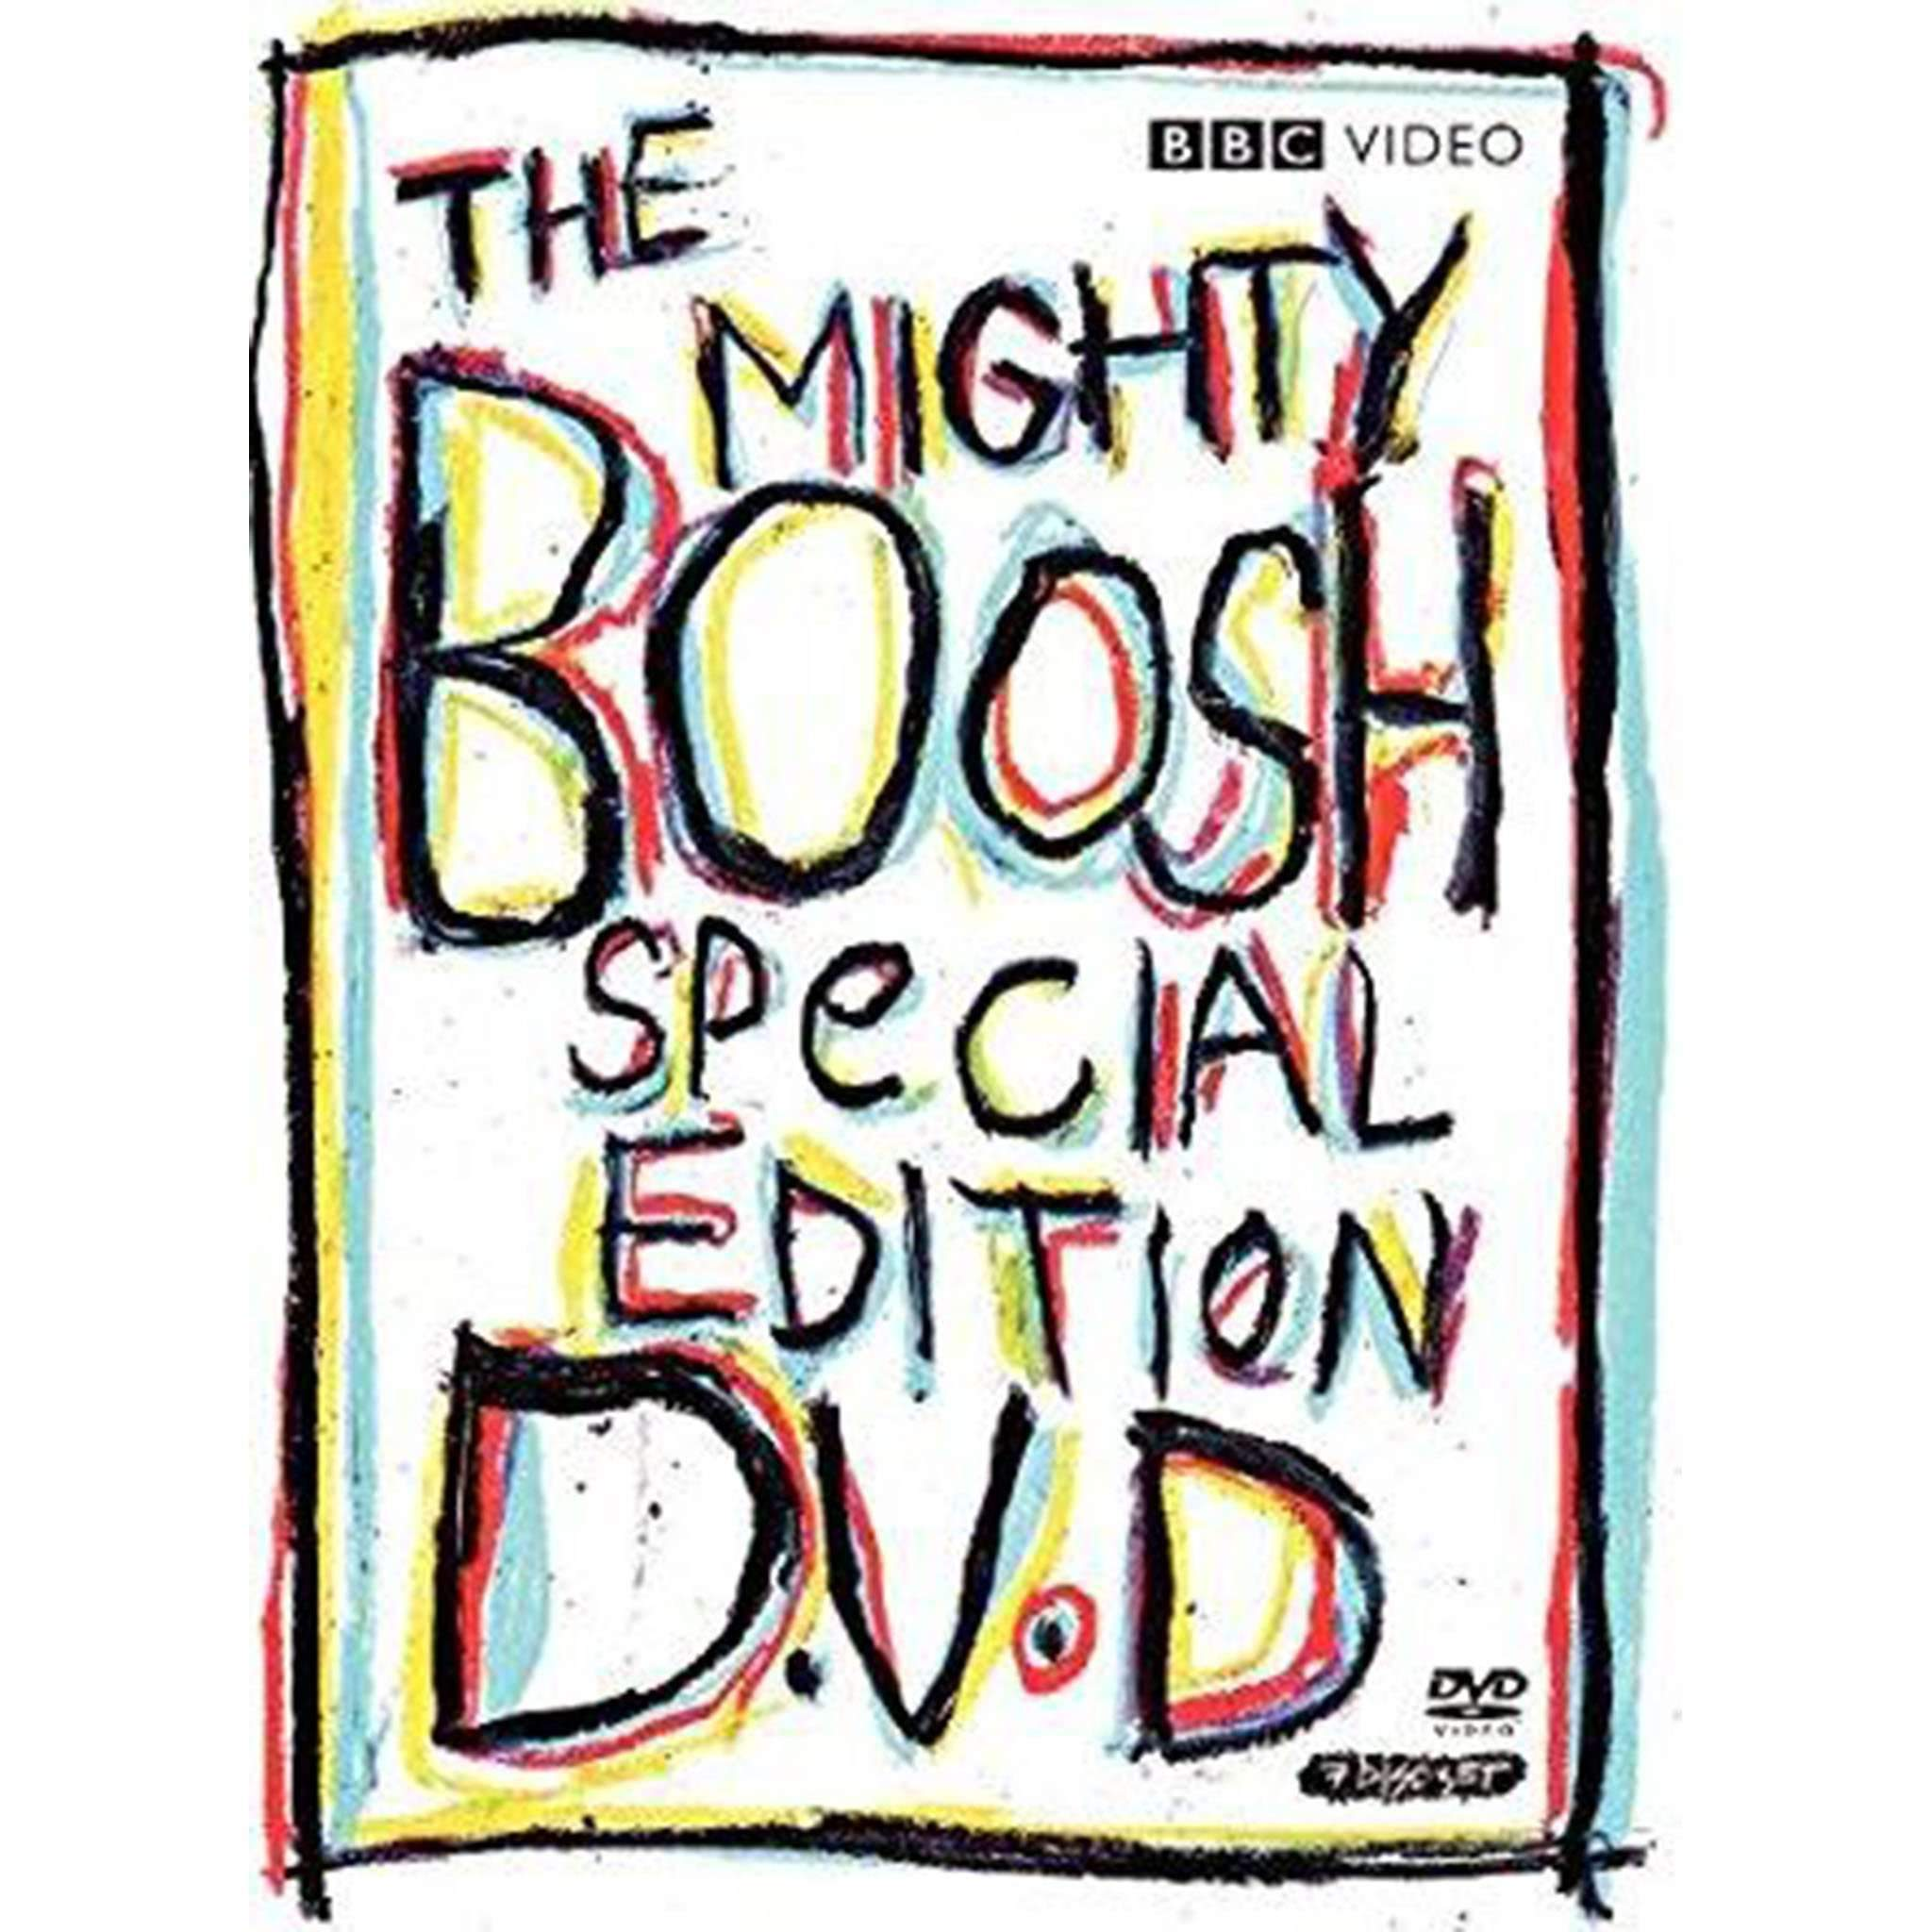 The Mighty Boosh DVD Special Edition Box Set BBC America DVDs & Blu-ray Discs > DVDs > Box Sets